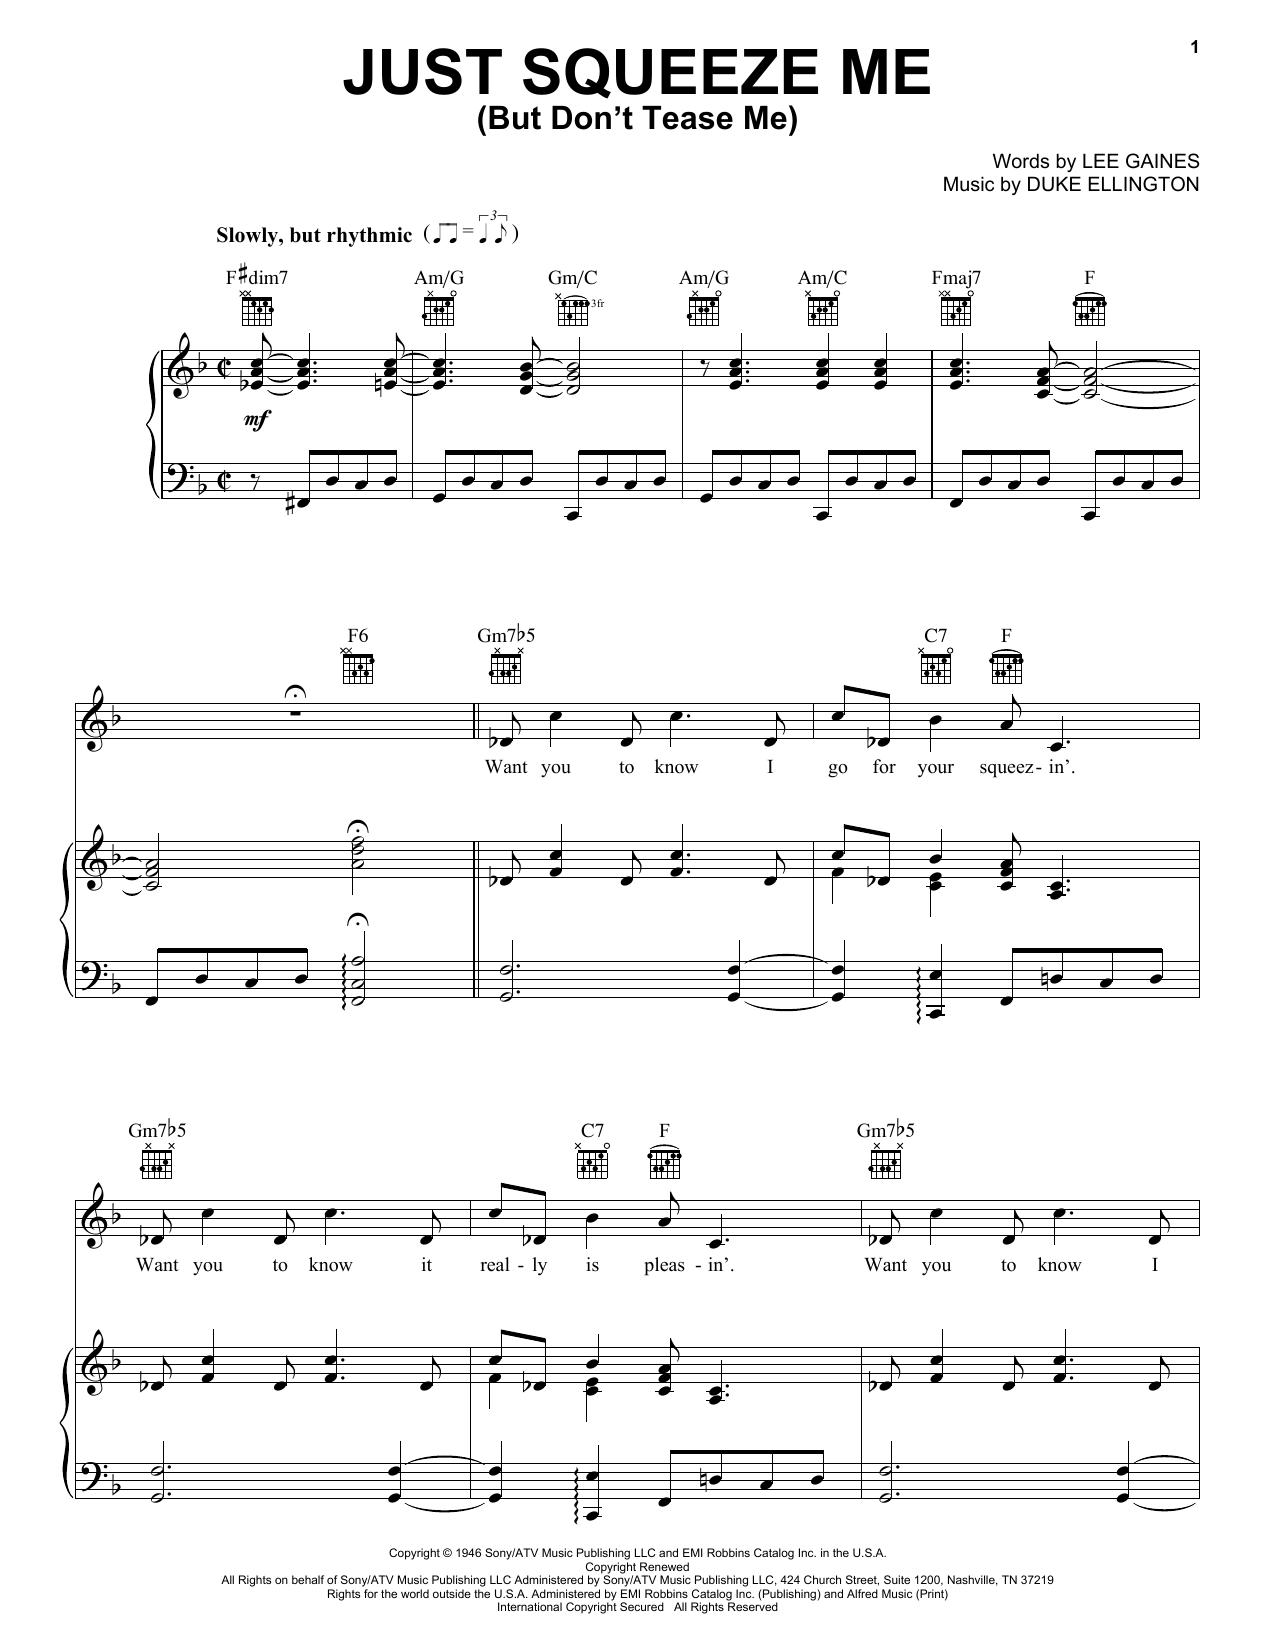 Just Squeeze Me (But Don't Tease Me) sheet music